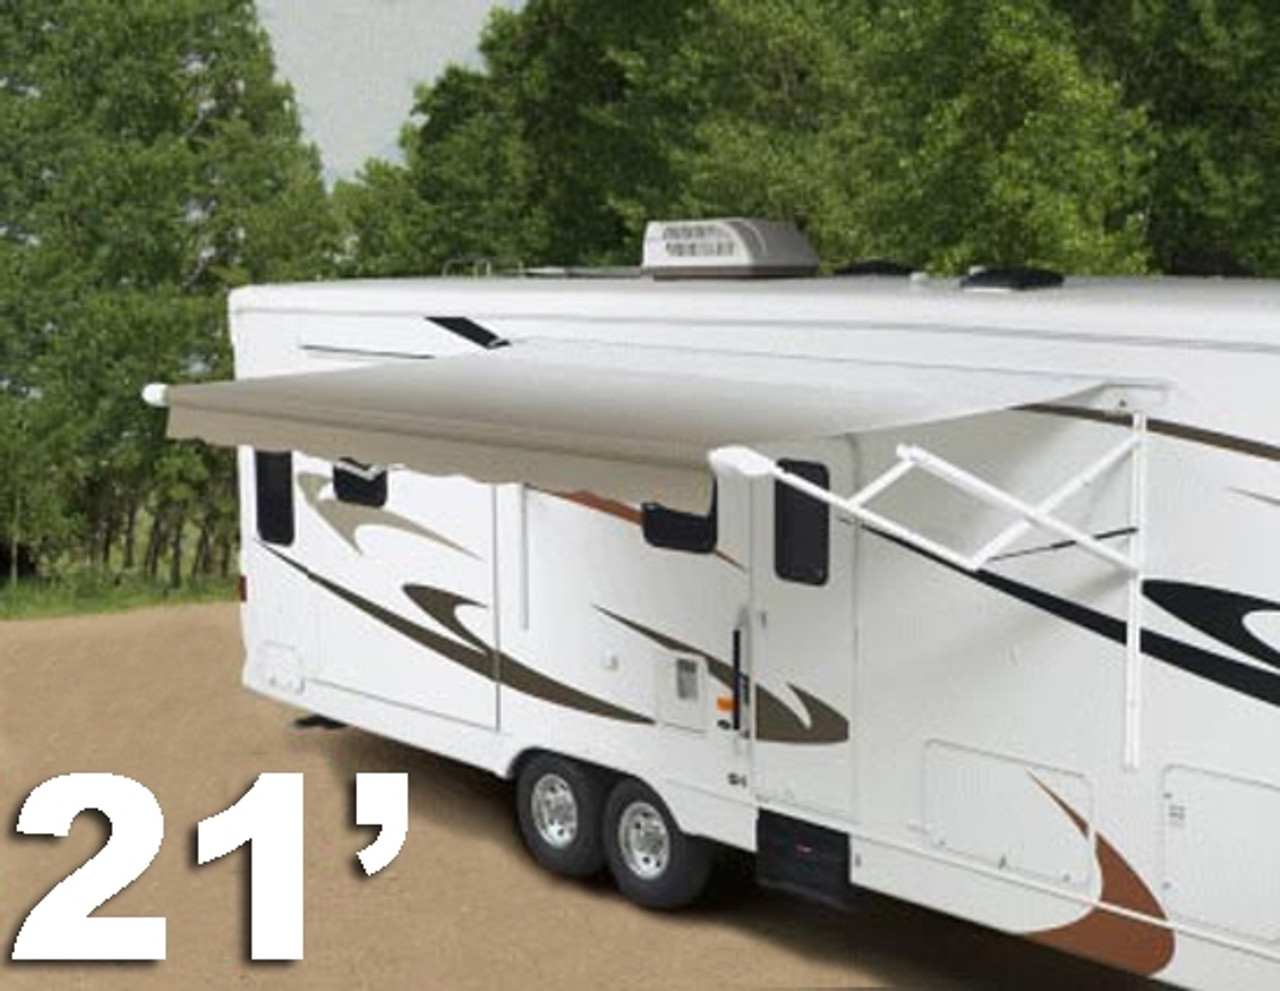 21' RV Patio Awnings, Complete